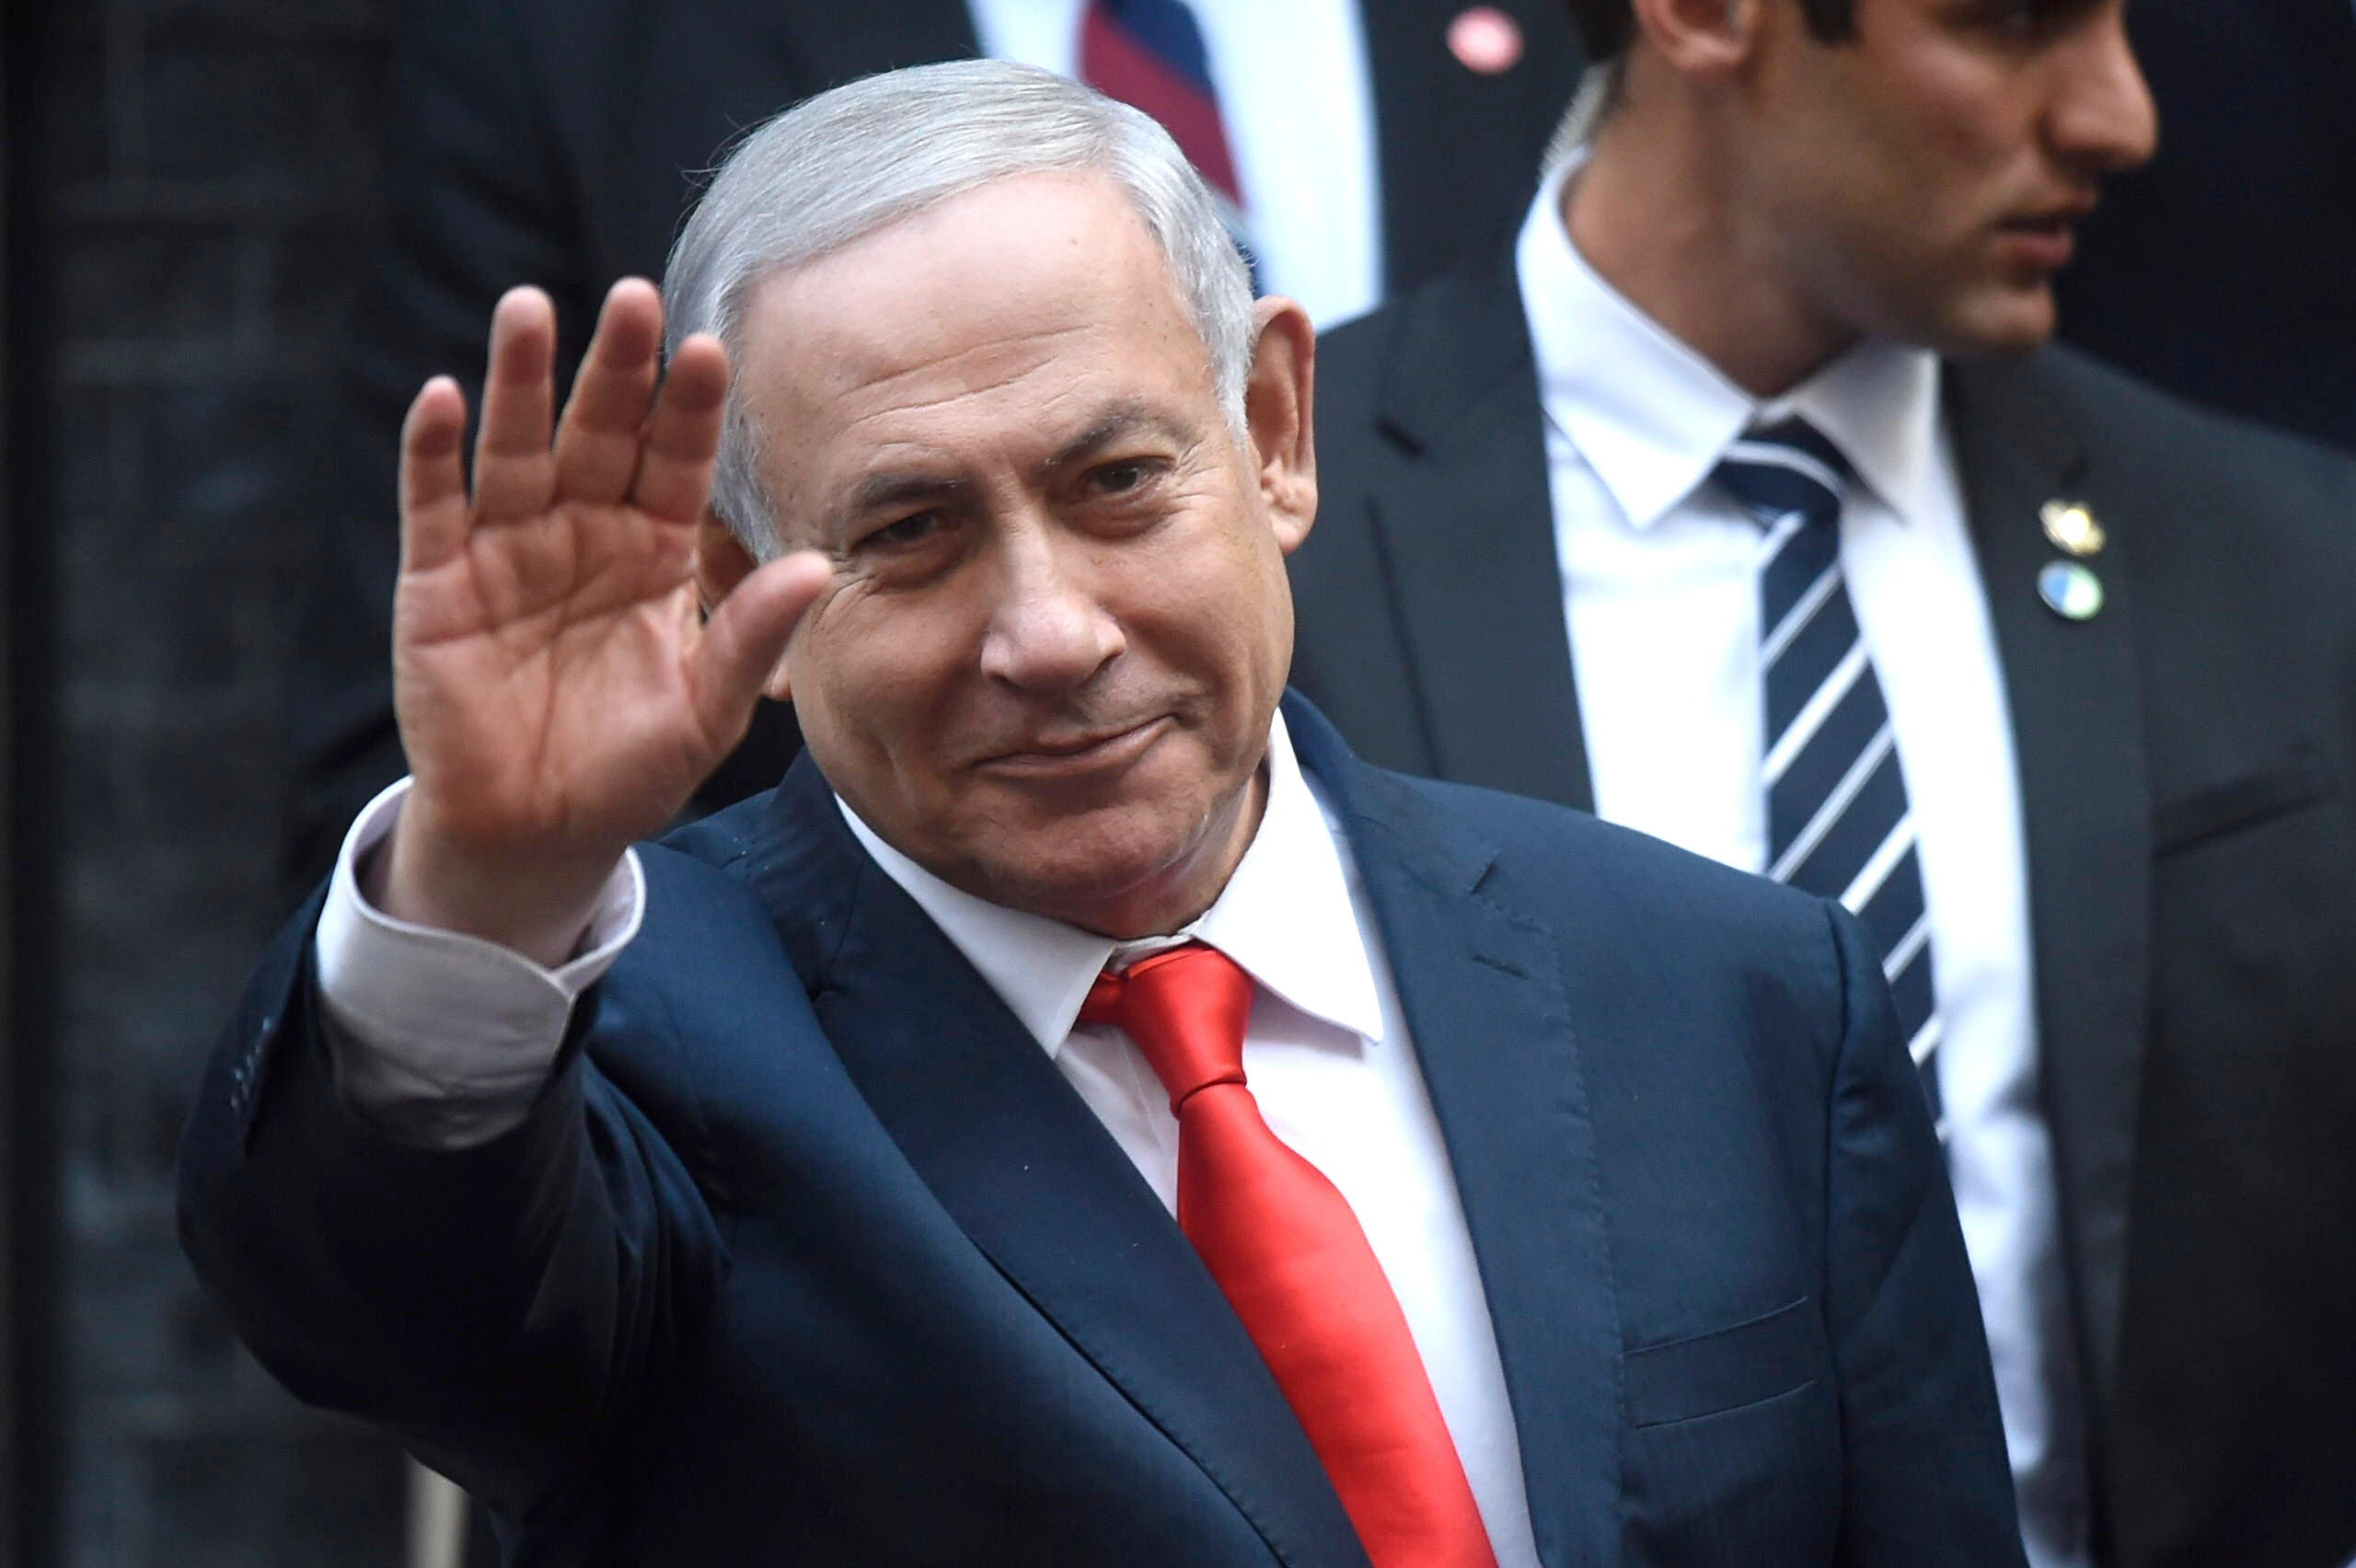 Will a successful Covid vaccine programme win Netanyahu the 2021 Israel election?